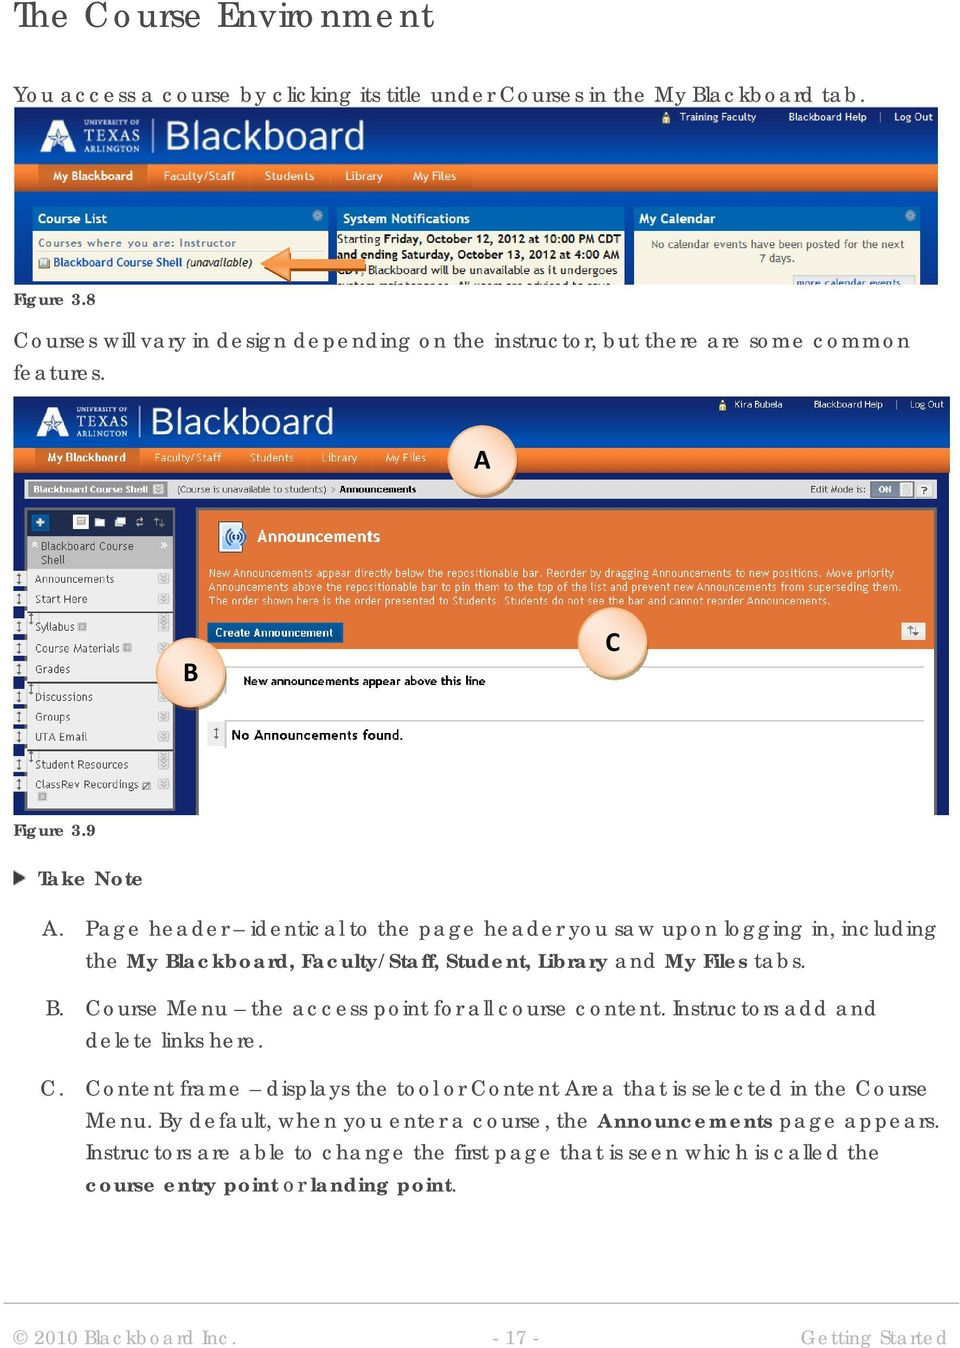 Page header identical to the page header you saw upon logging in, including the My Blackboard, Faculty/Staff, Student, Library and My Files tabs. B. Course Menu the access point for all course content.